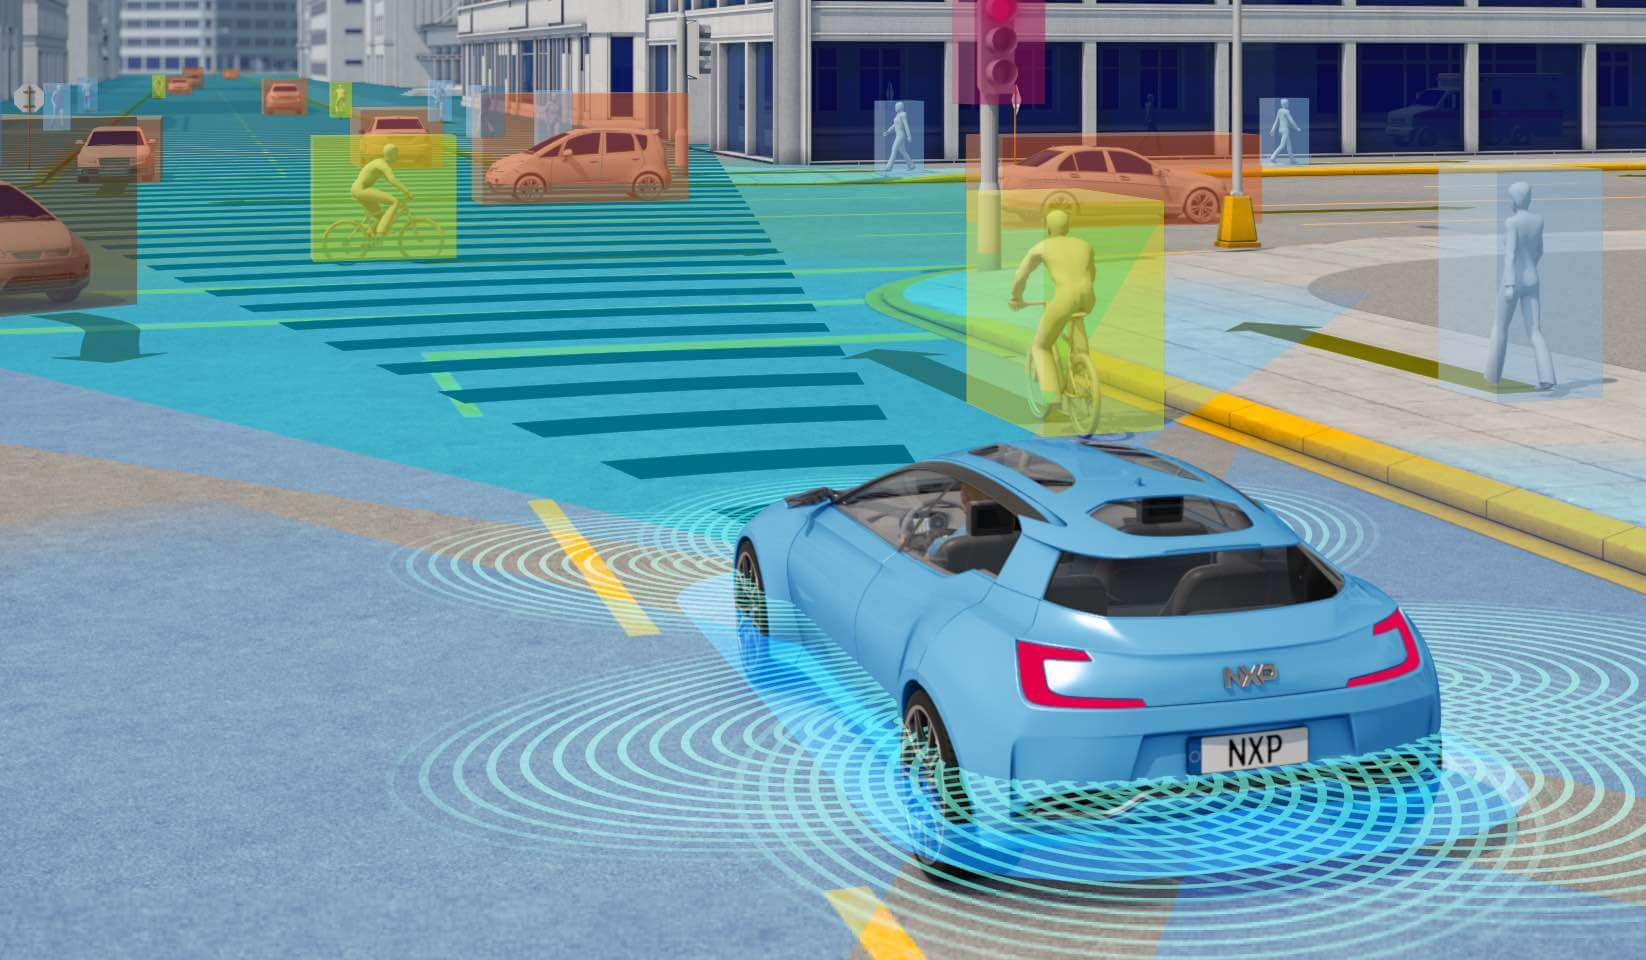 Opinion: Automotive tech now focused on safety